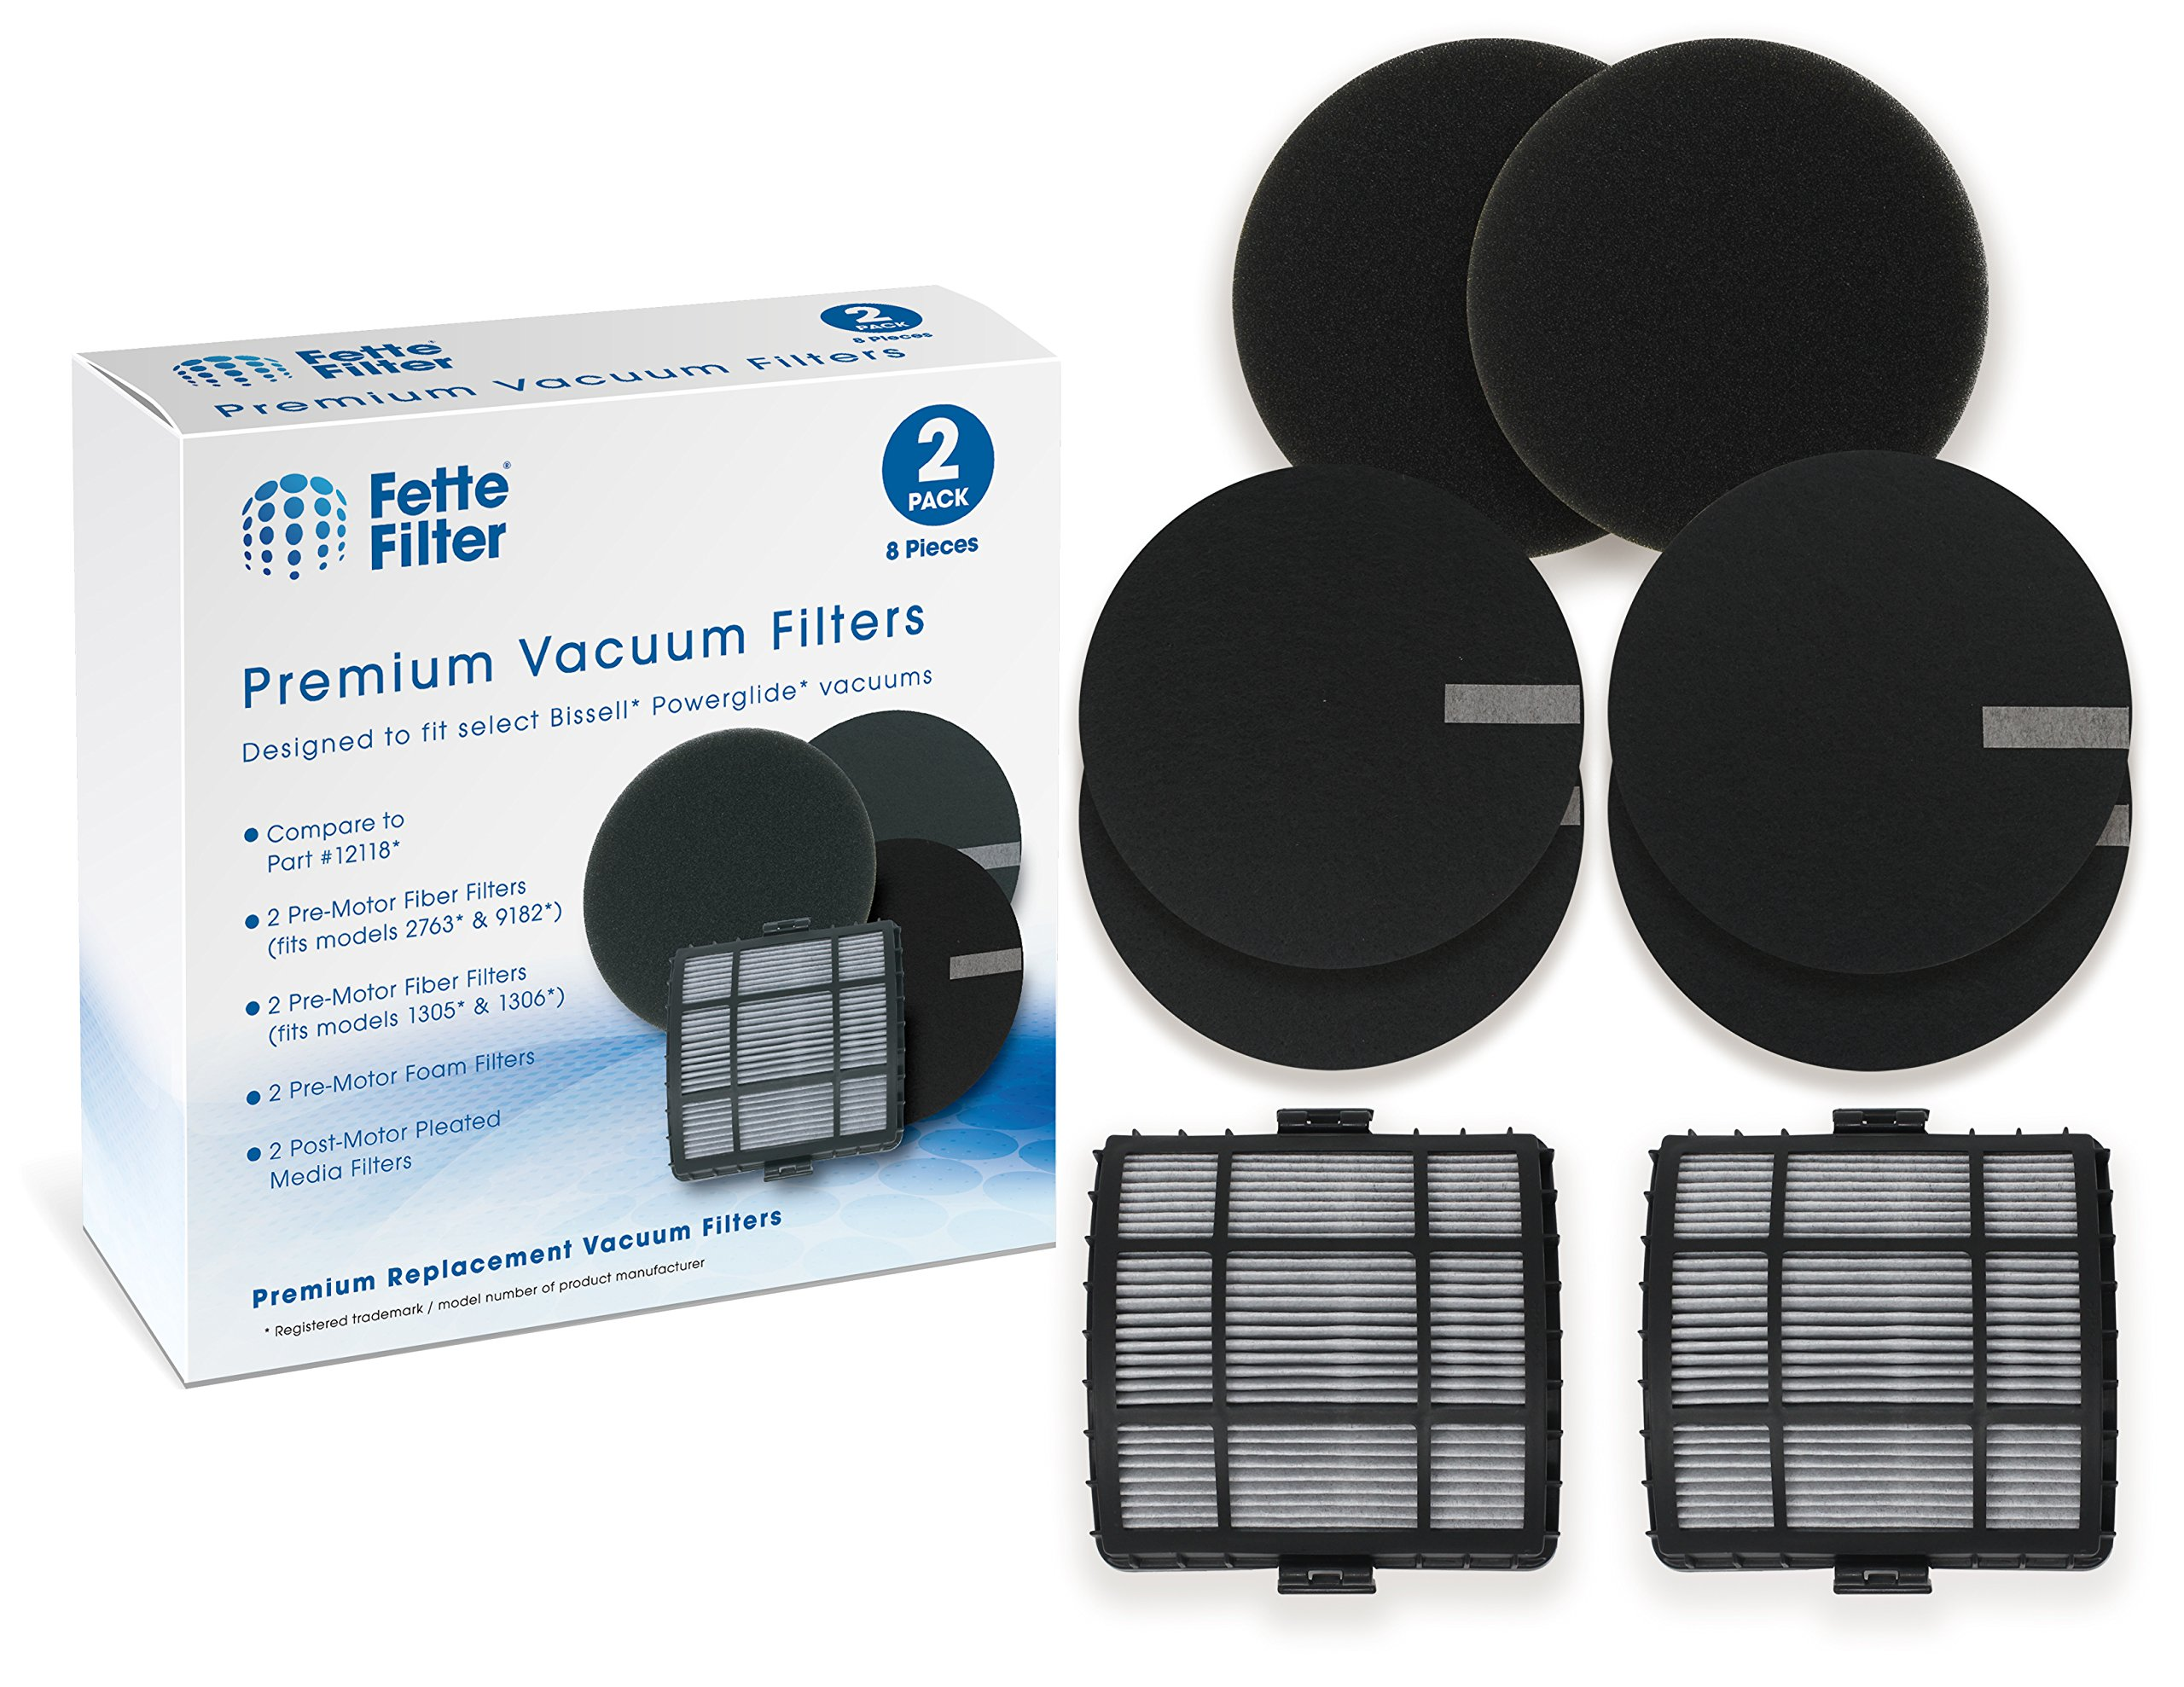 Fette Filter - Filter Pack Compatible with Bissell Powerglide 12118 Vacuum Cleaners (8 Filters Total)